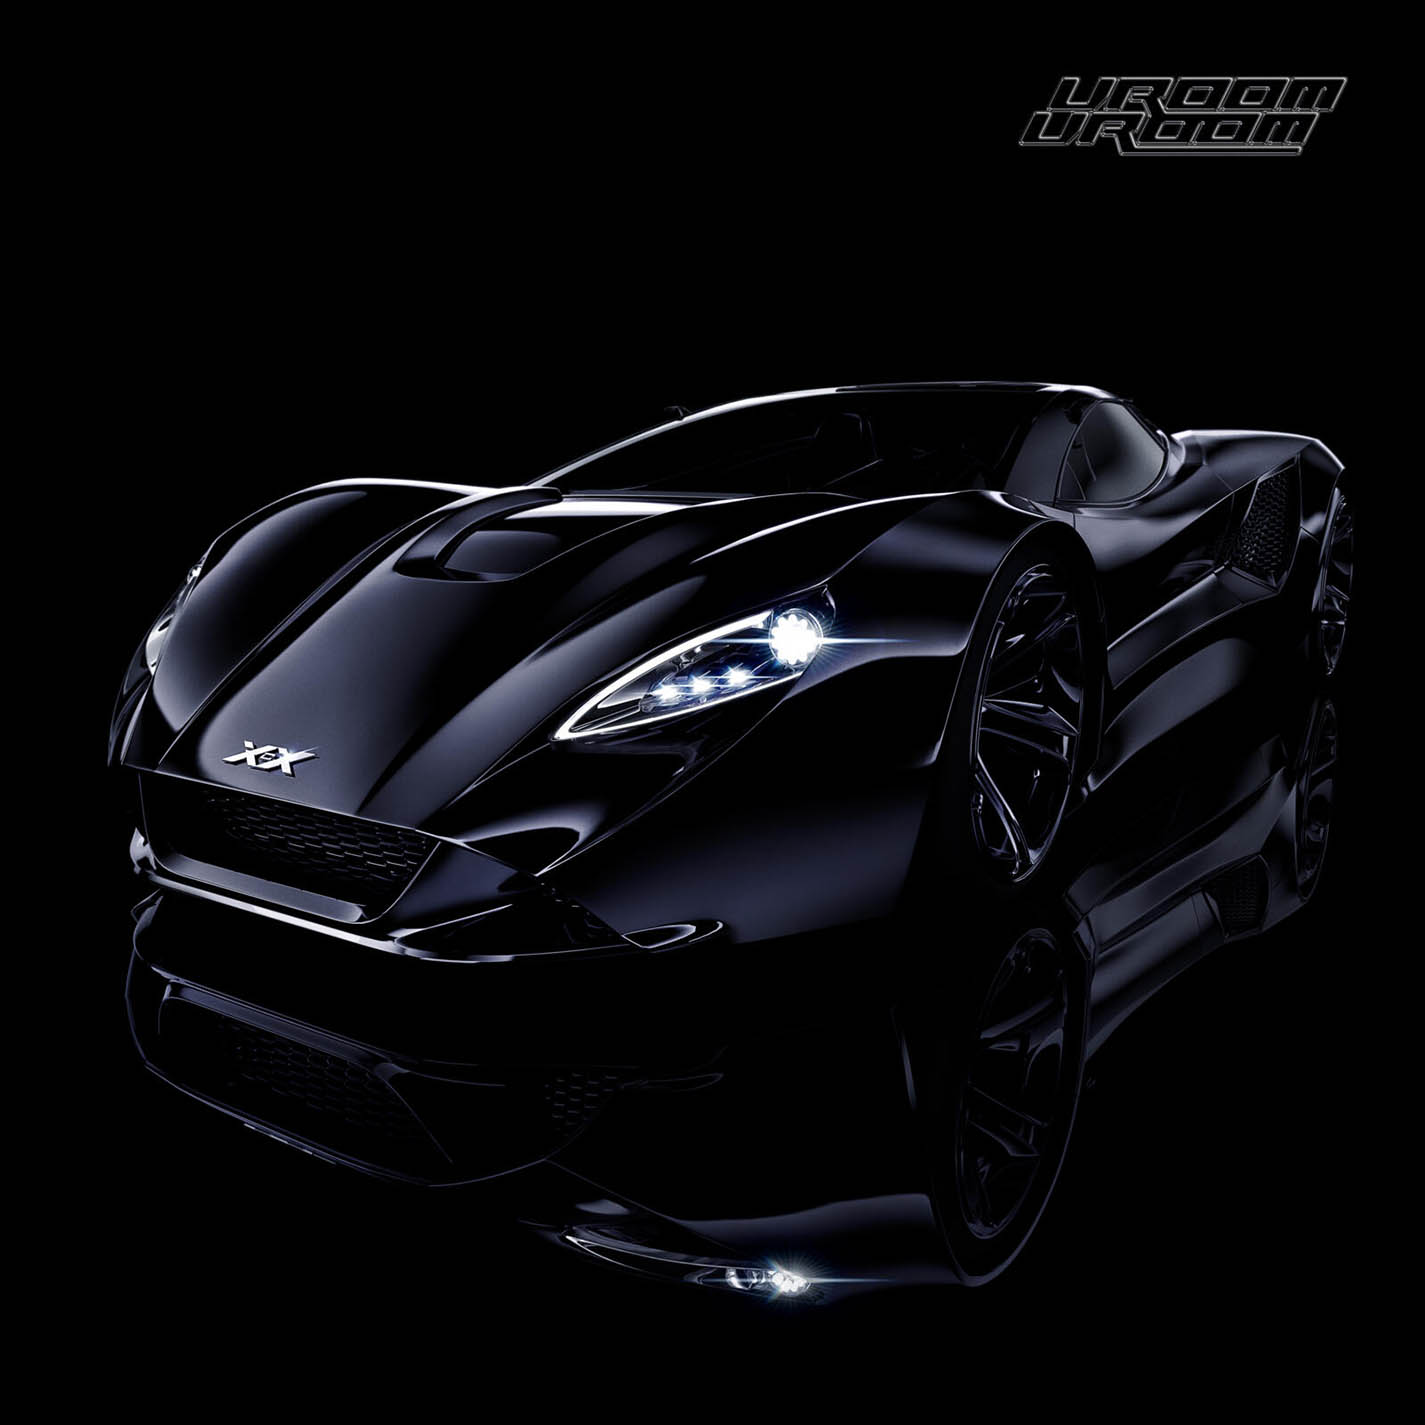 Charli XCX - Vroom Vroom EP [RSD Drops Aug 2020]